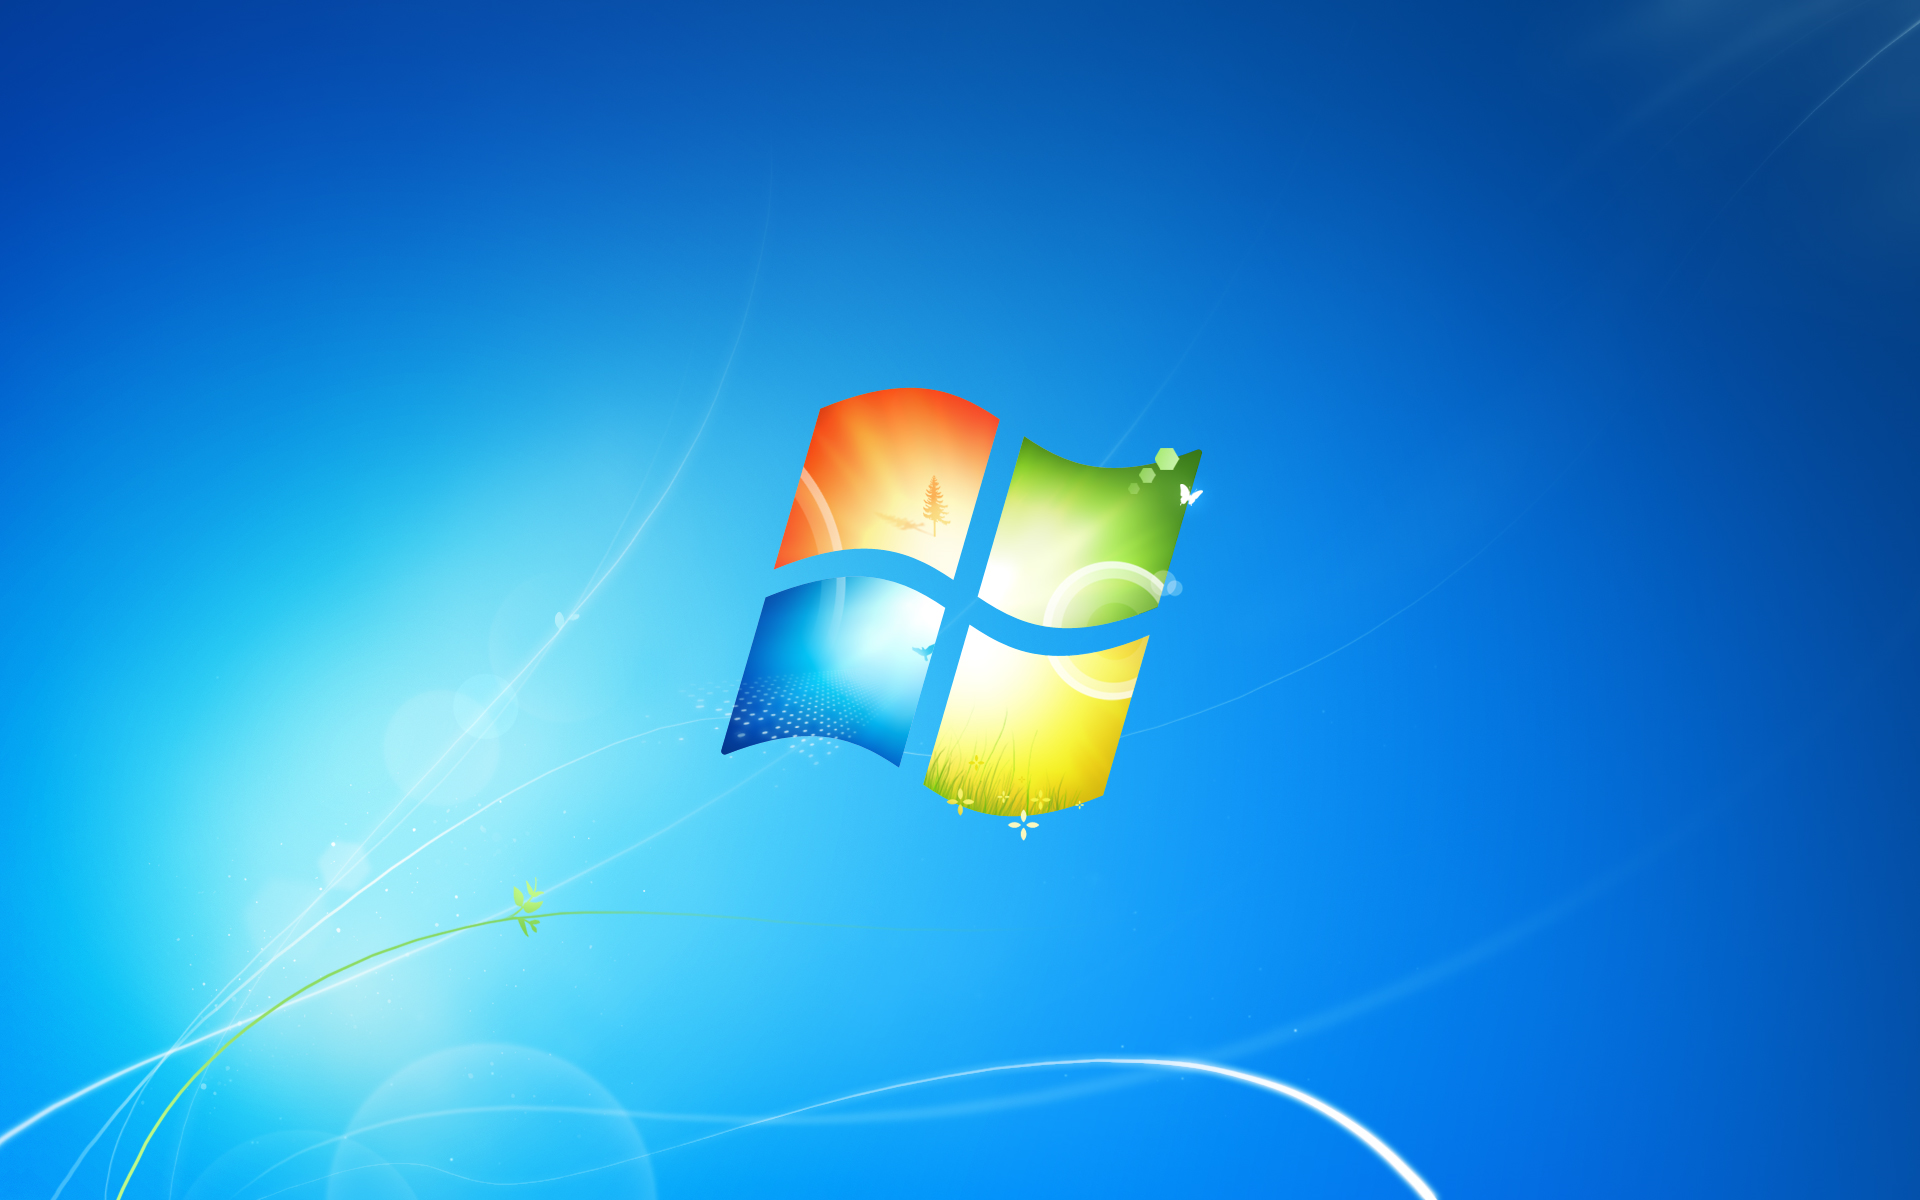 Windows7 Default Wallpaper